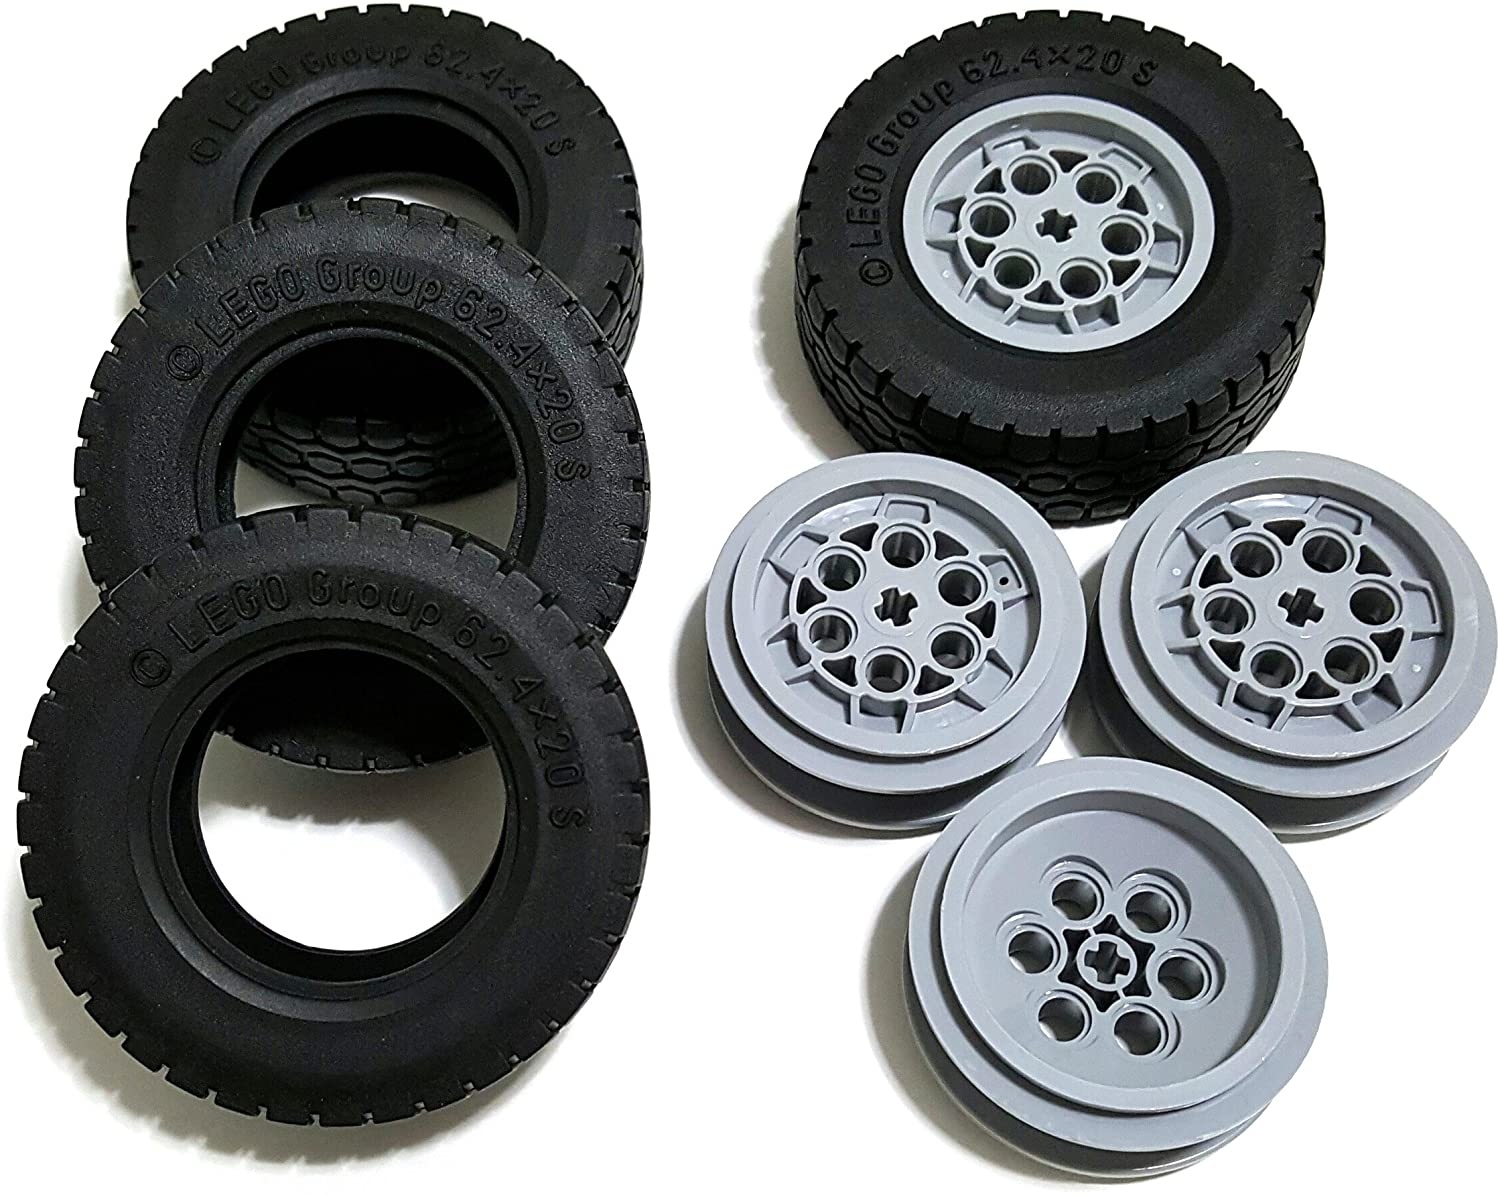 LEGO Tire Ø62.4 x 20 w/ Rim Ø 43,2 X 18 - Pack of 4 each (86652) (32019 / 75999)